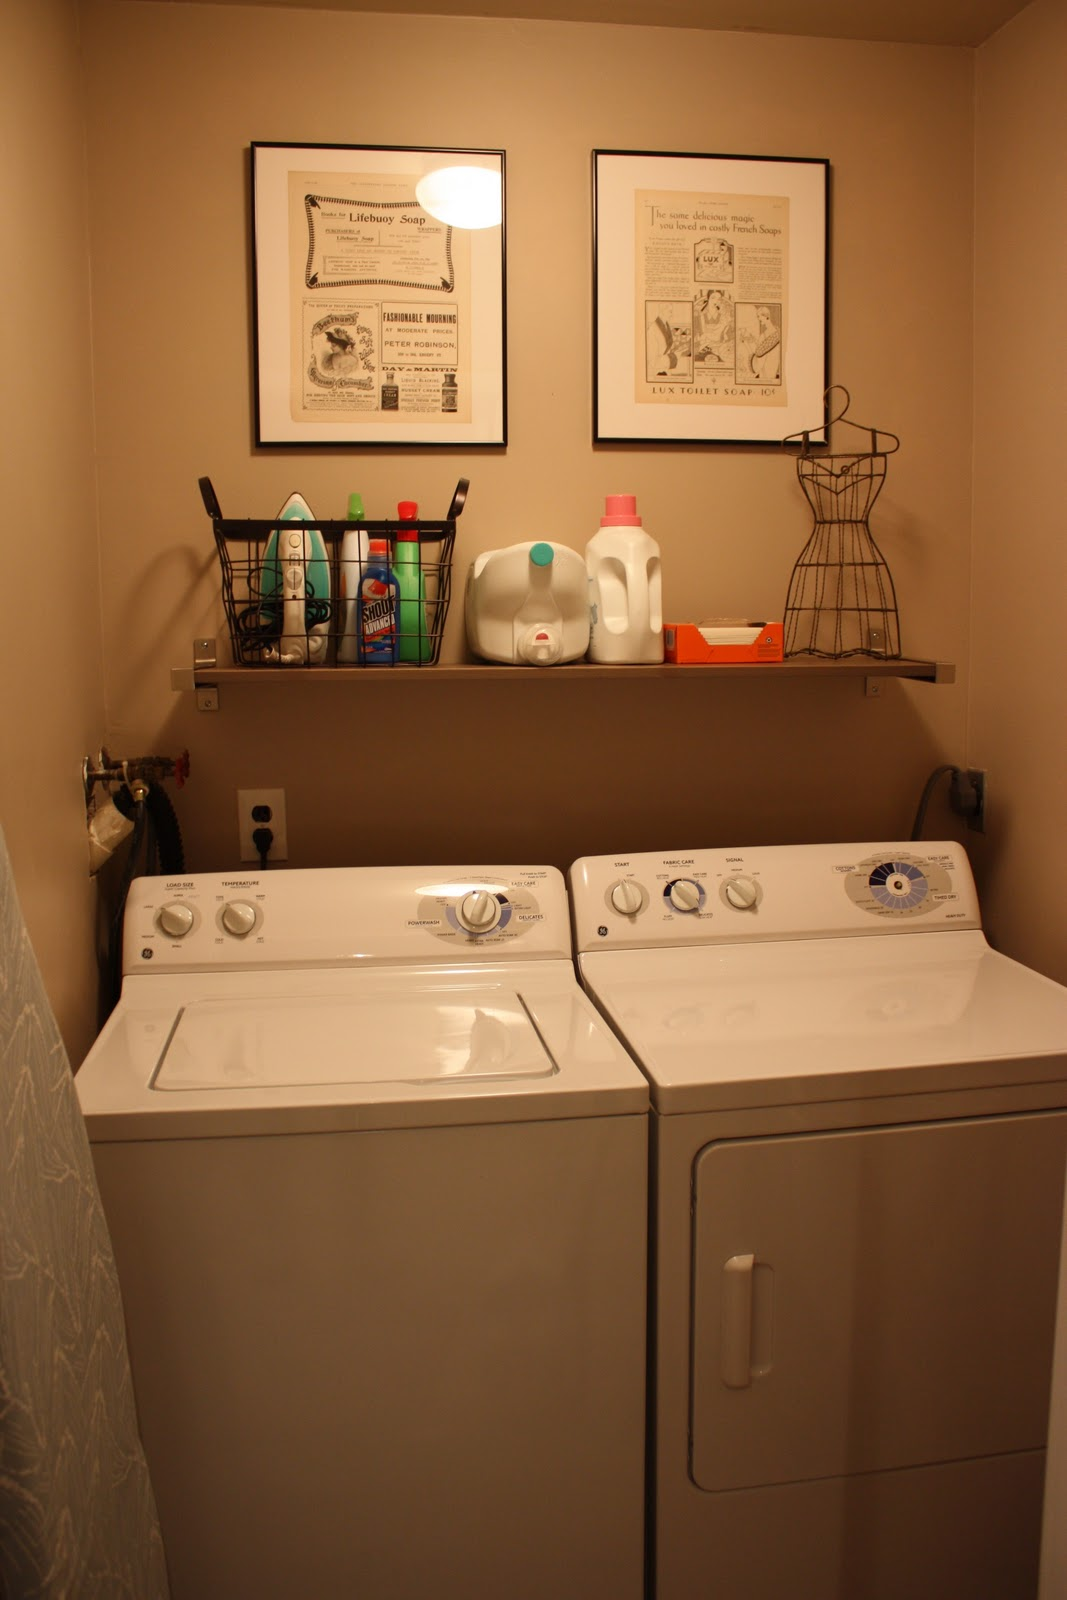 Laundry Room Picture Frames A Simple Kind Of Life Laundry Room Art